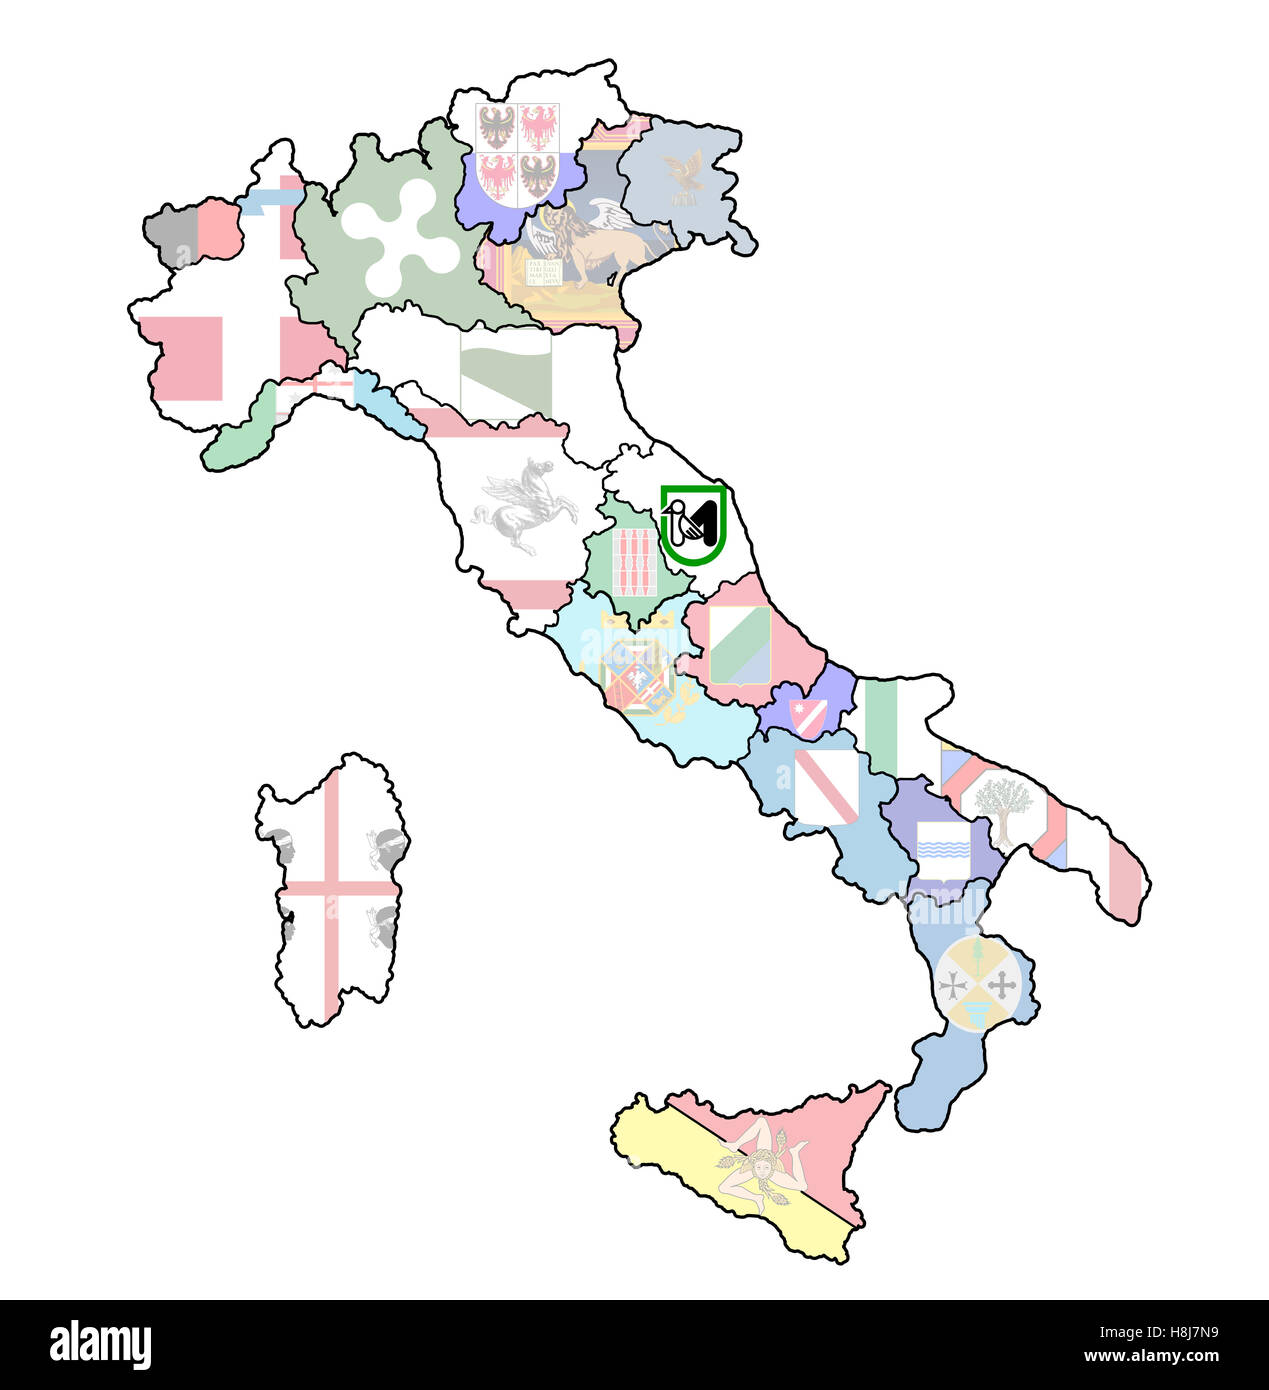 Marche Region Italy Map.Marche Region On Administration Map Of Italy With Flags Stock Photo